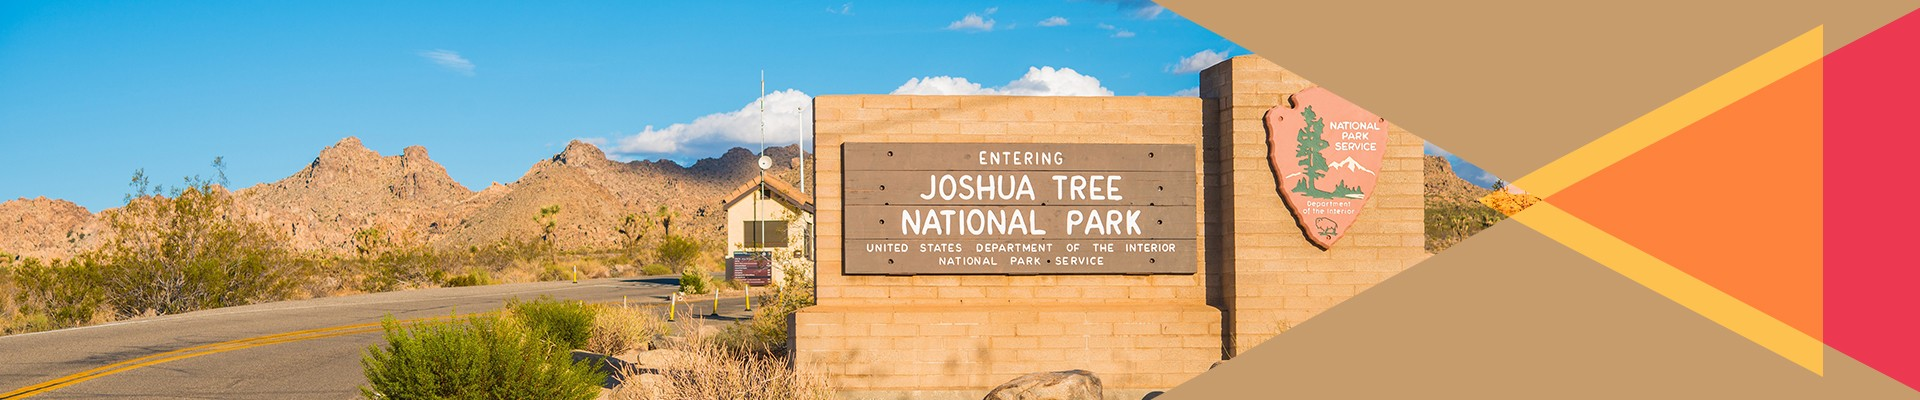 Joshua Tree National Park Visitor Center